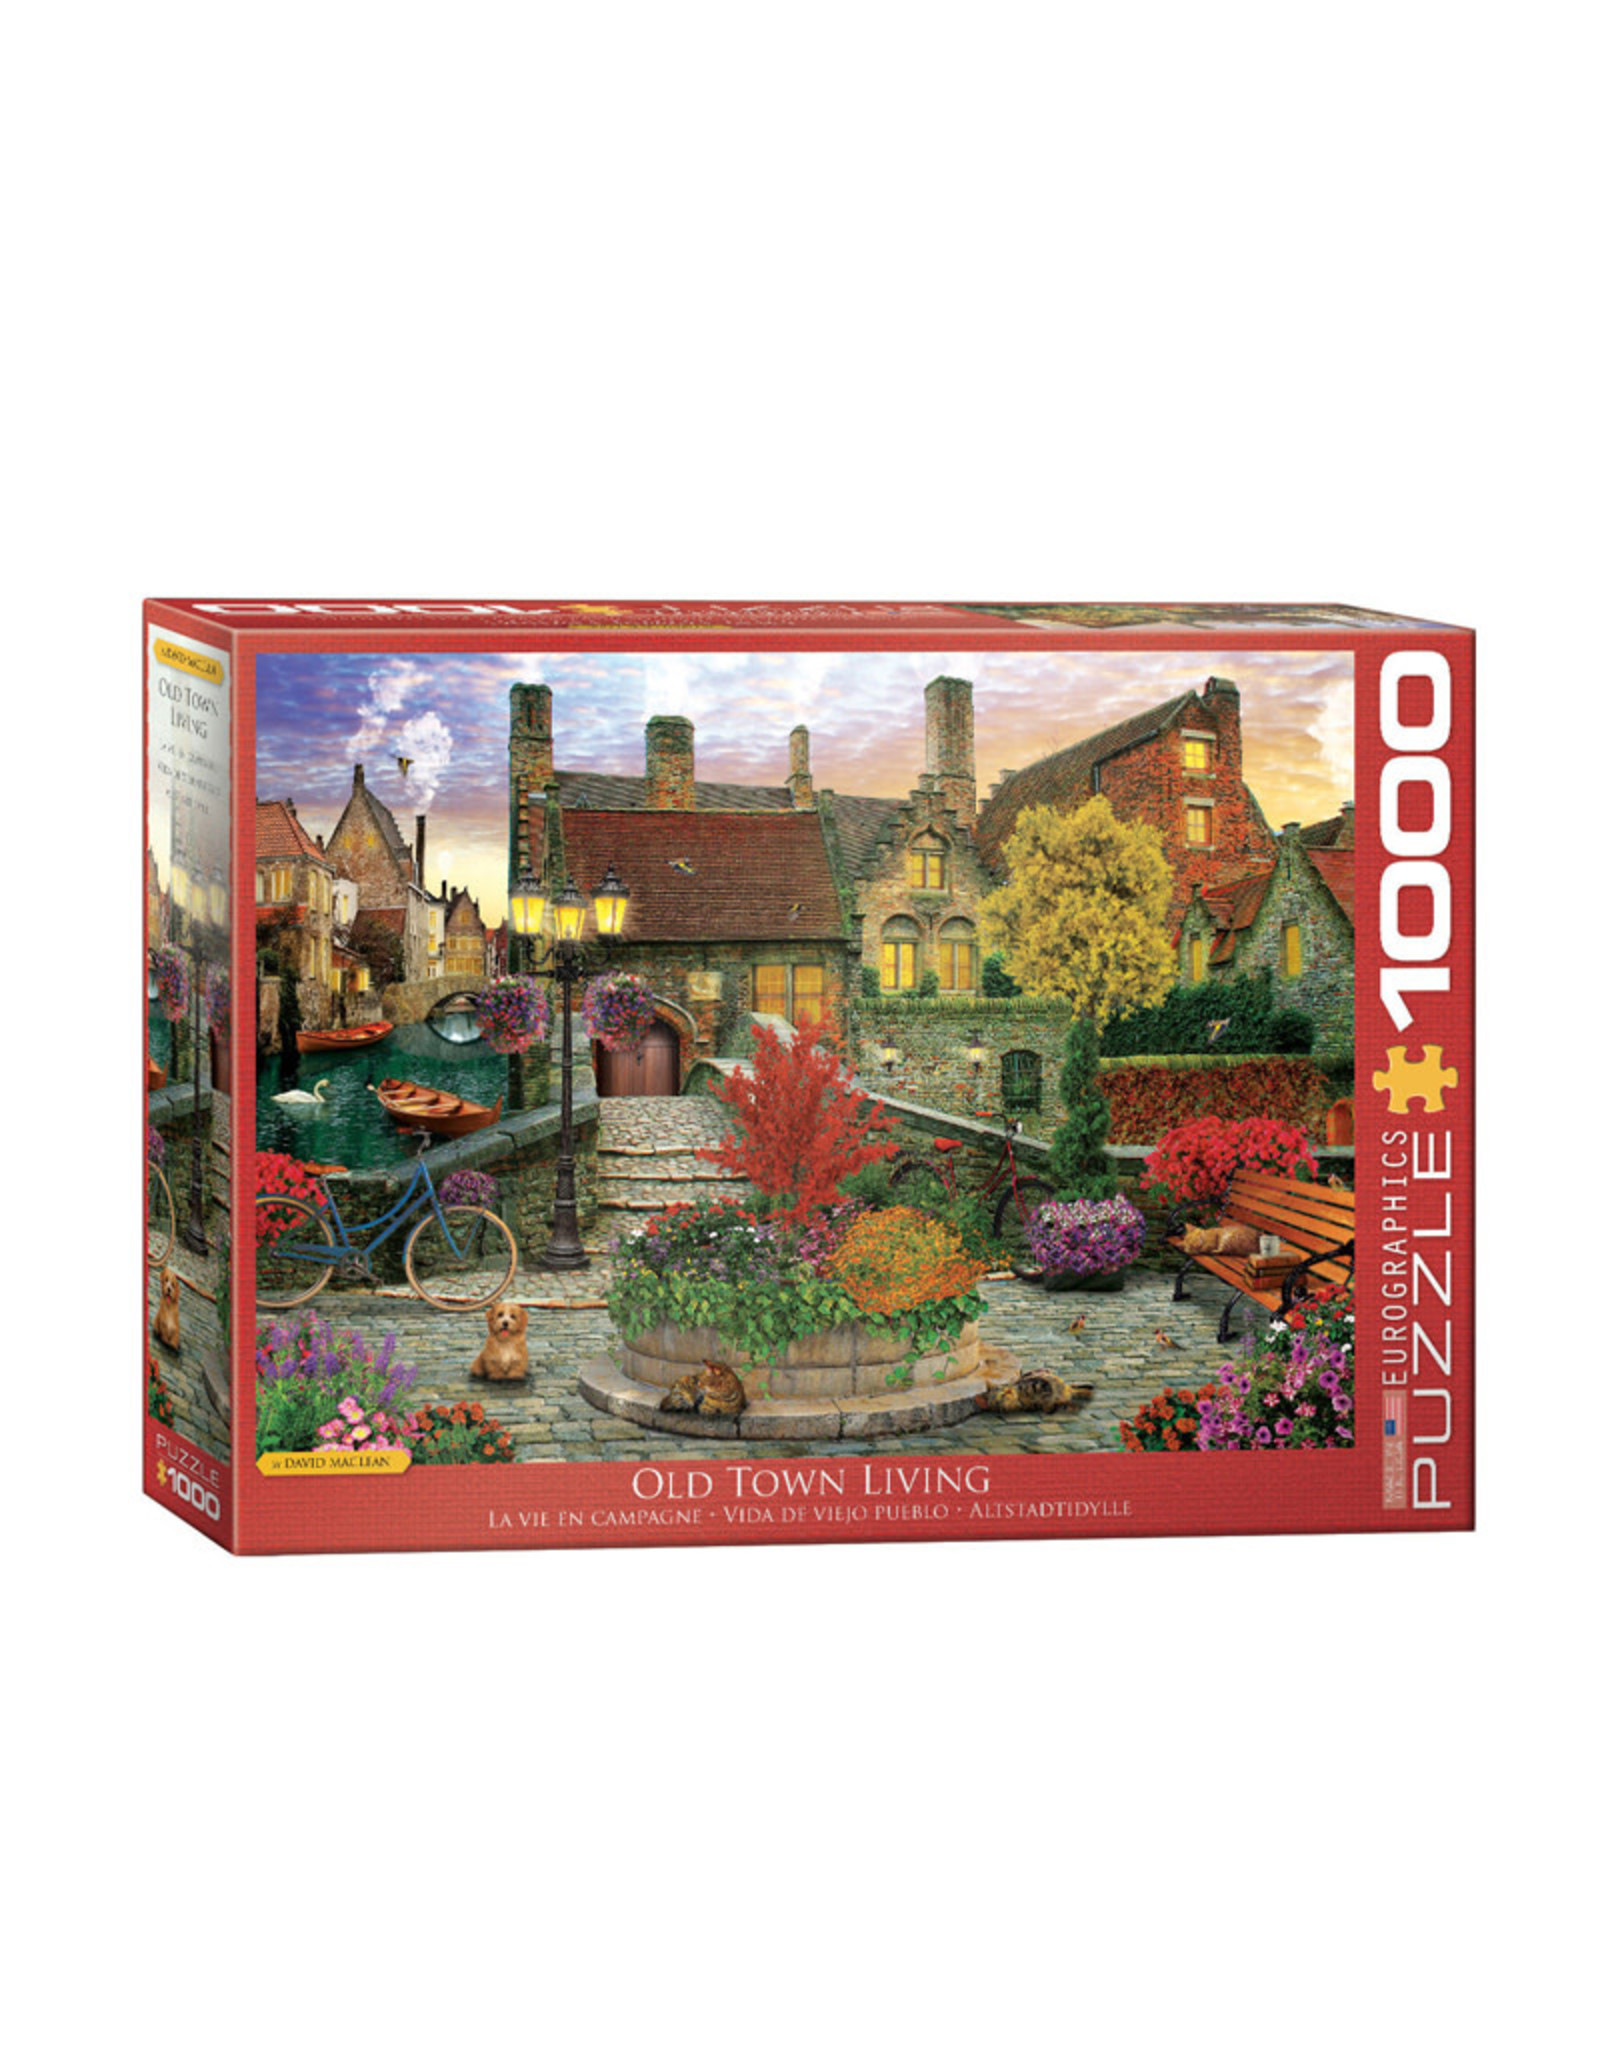 Eurographics Old Town Living Puzzle 1000 PCS